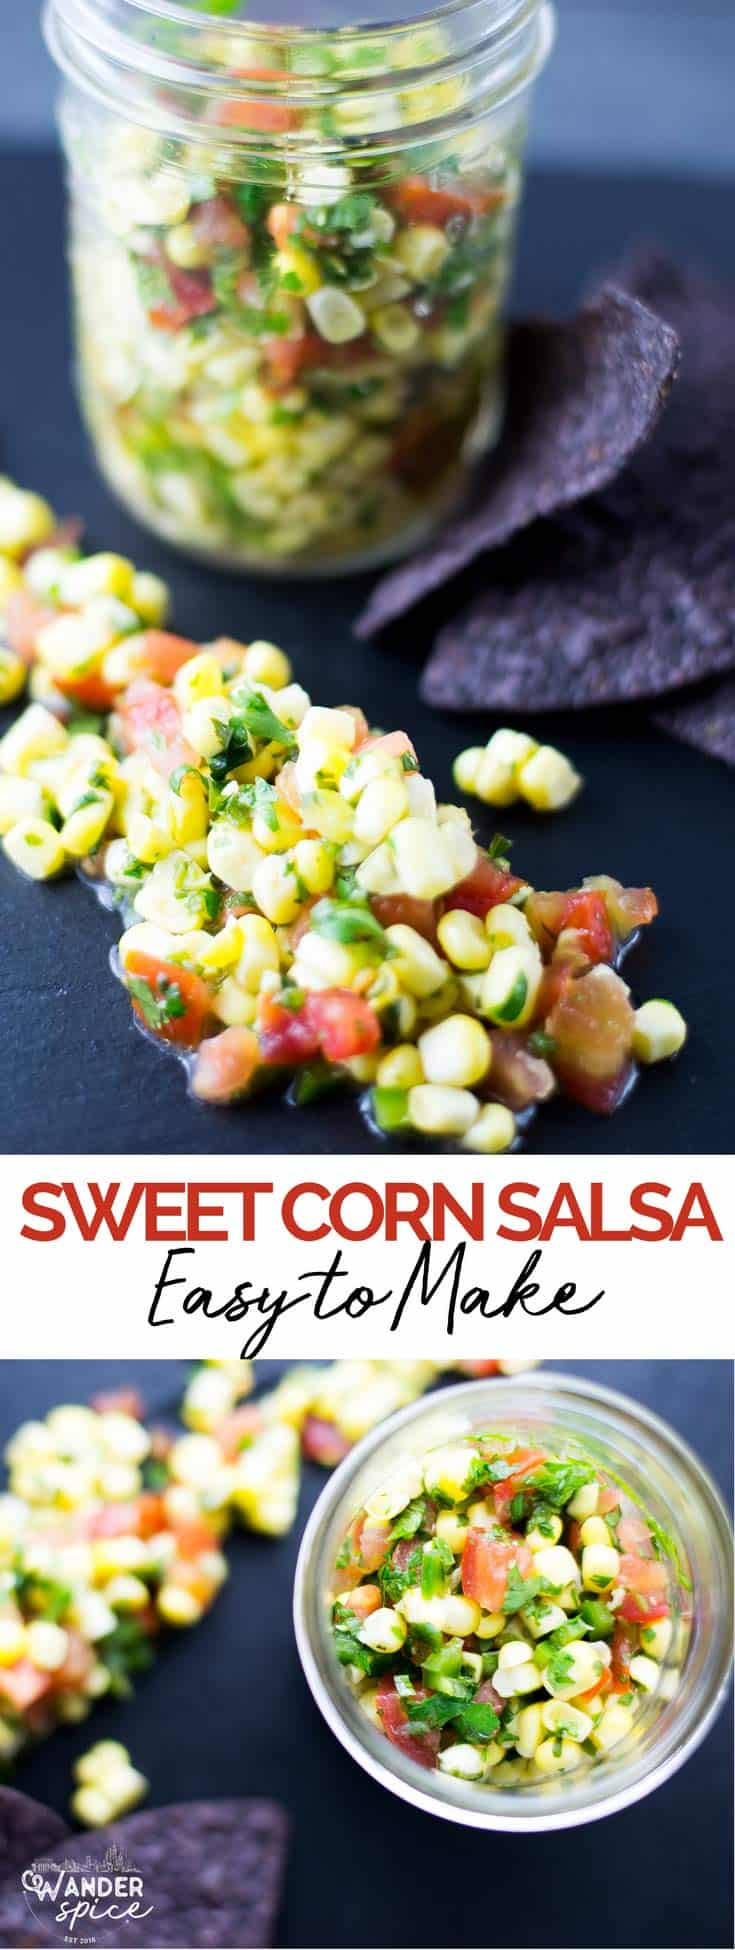 Easy Corn Salsa recipe fresh with tomatoes, cilantro, lime and jalapeño.